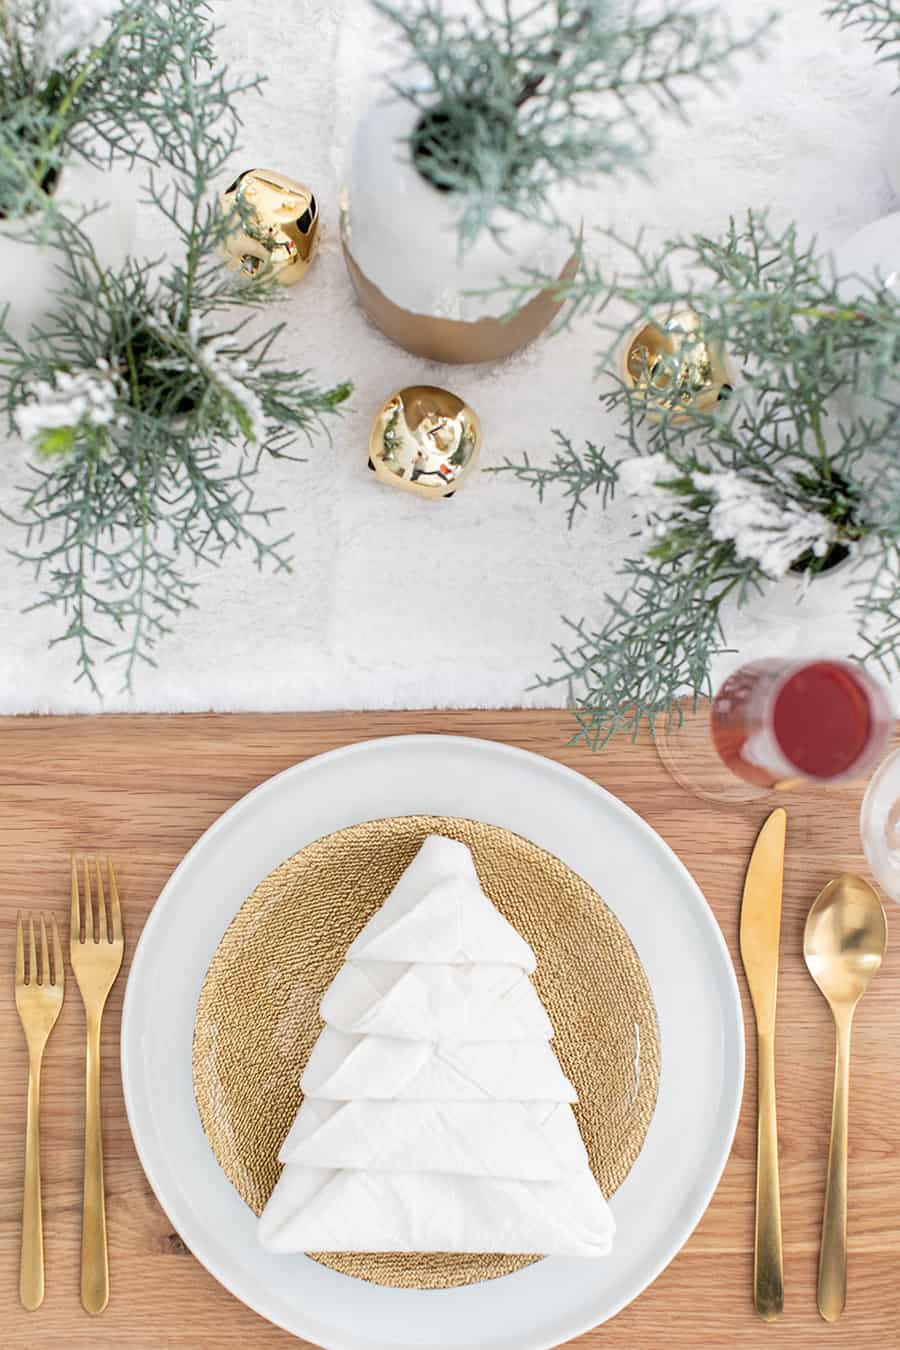 White napkin folded like a Christmas tree on a gold plate with gold utensils.